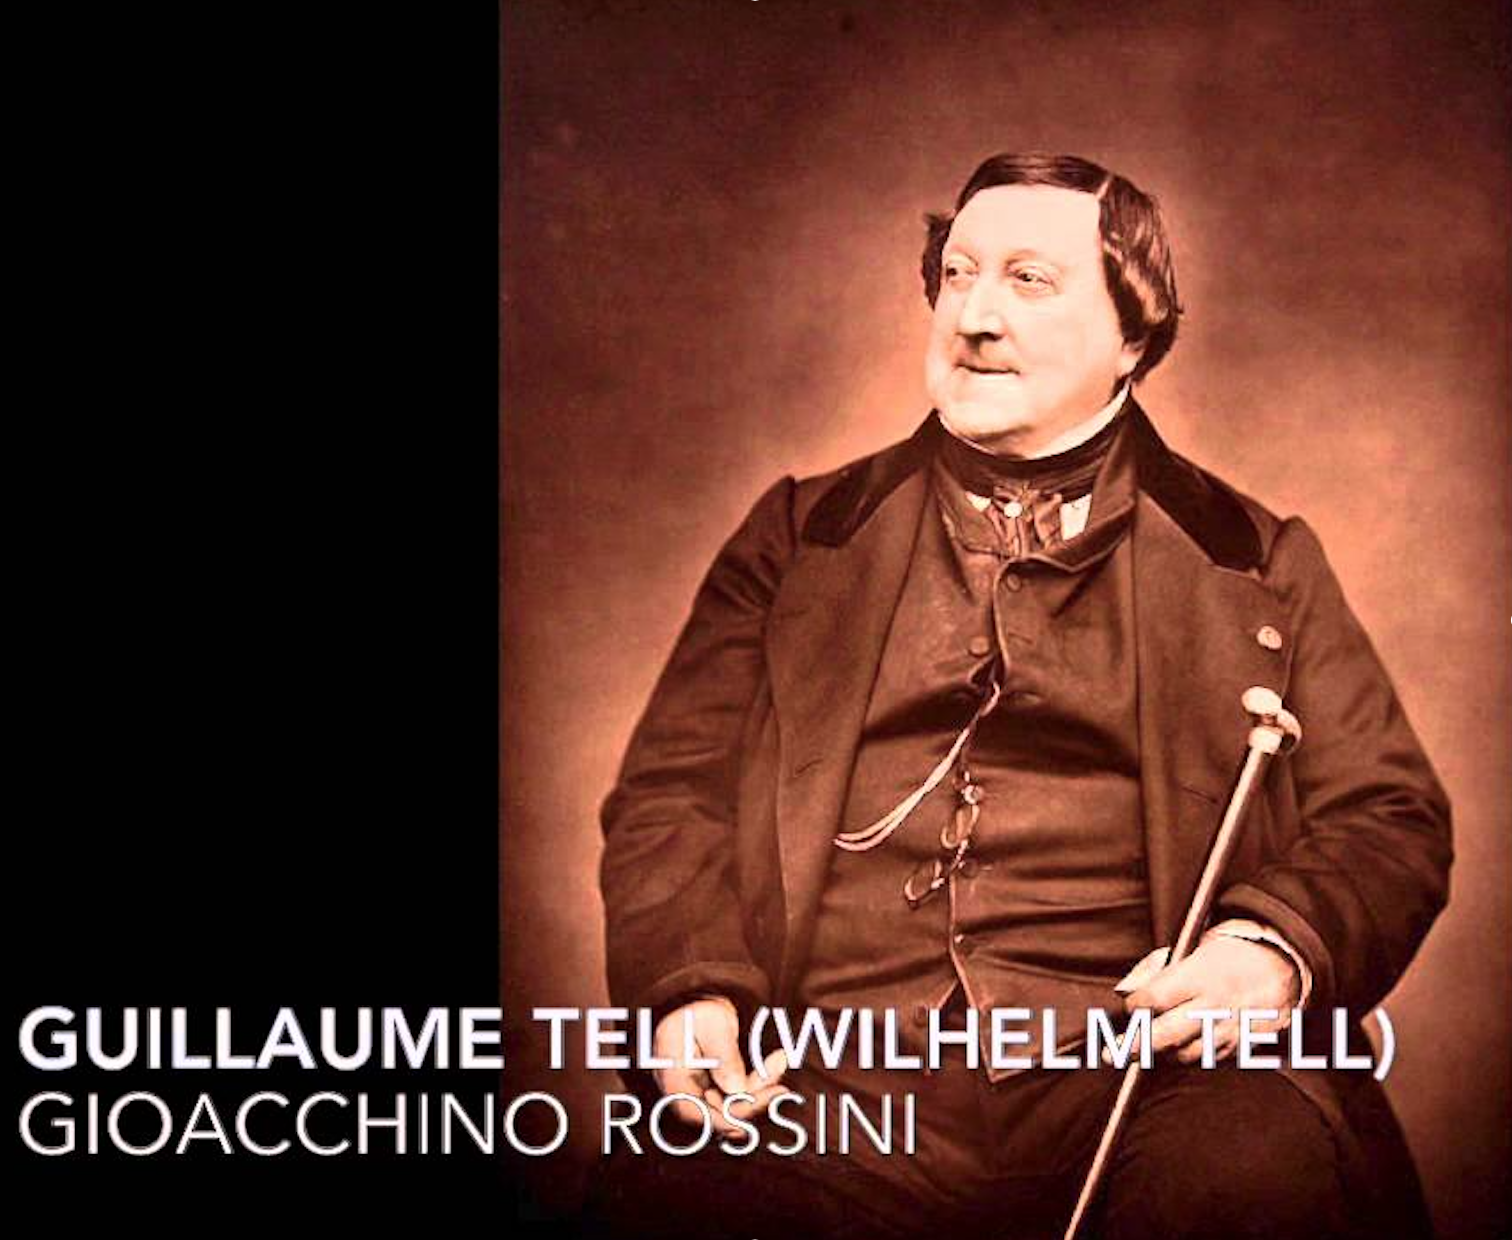 Rossini's GUILLAUME TELL (Guillaume Tell)